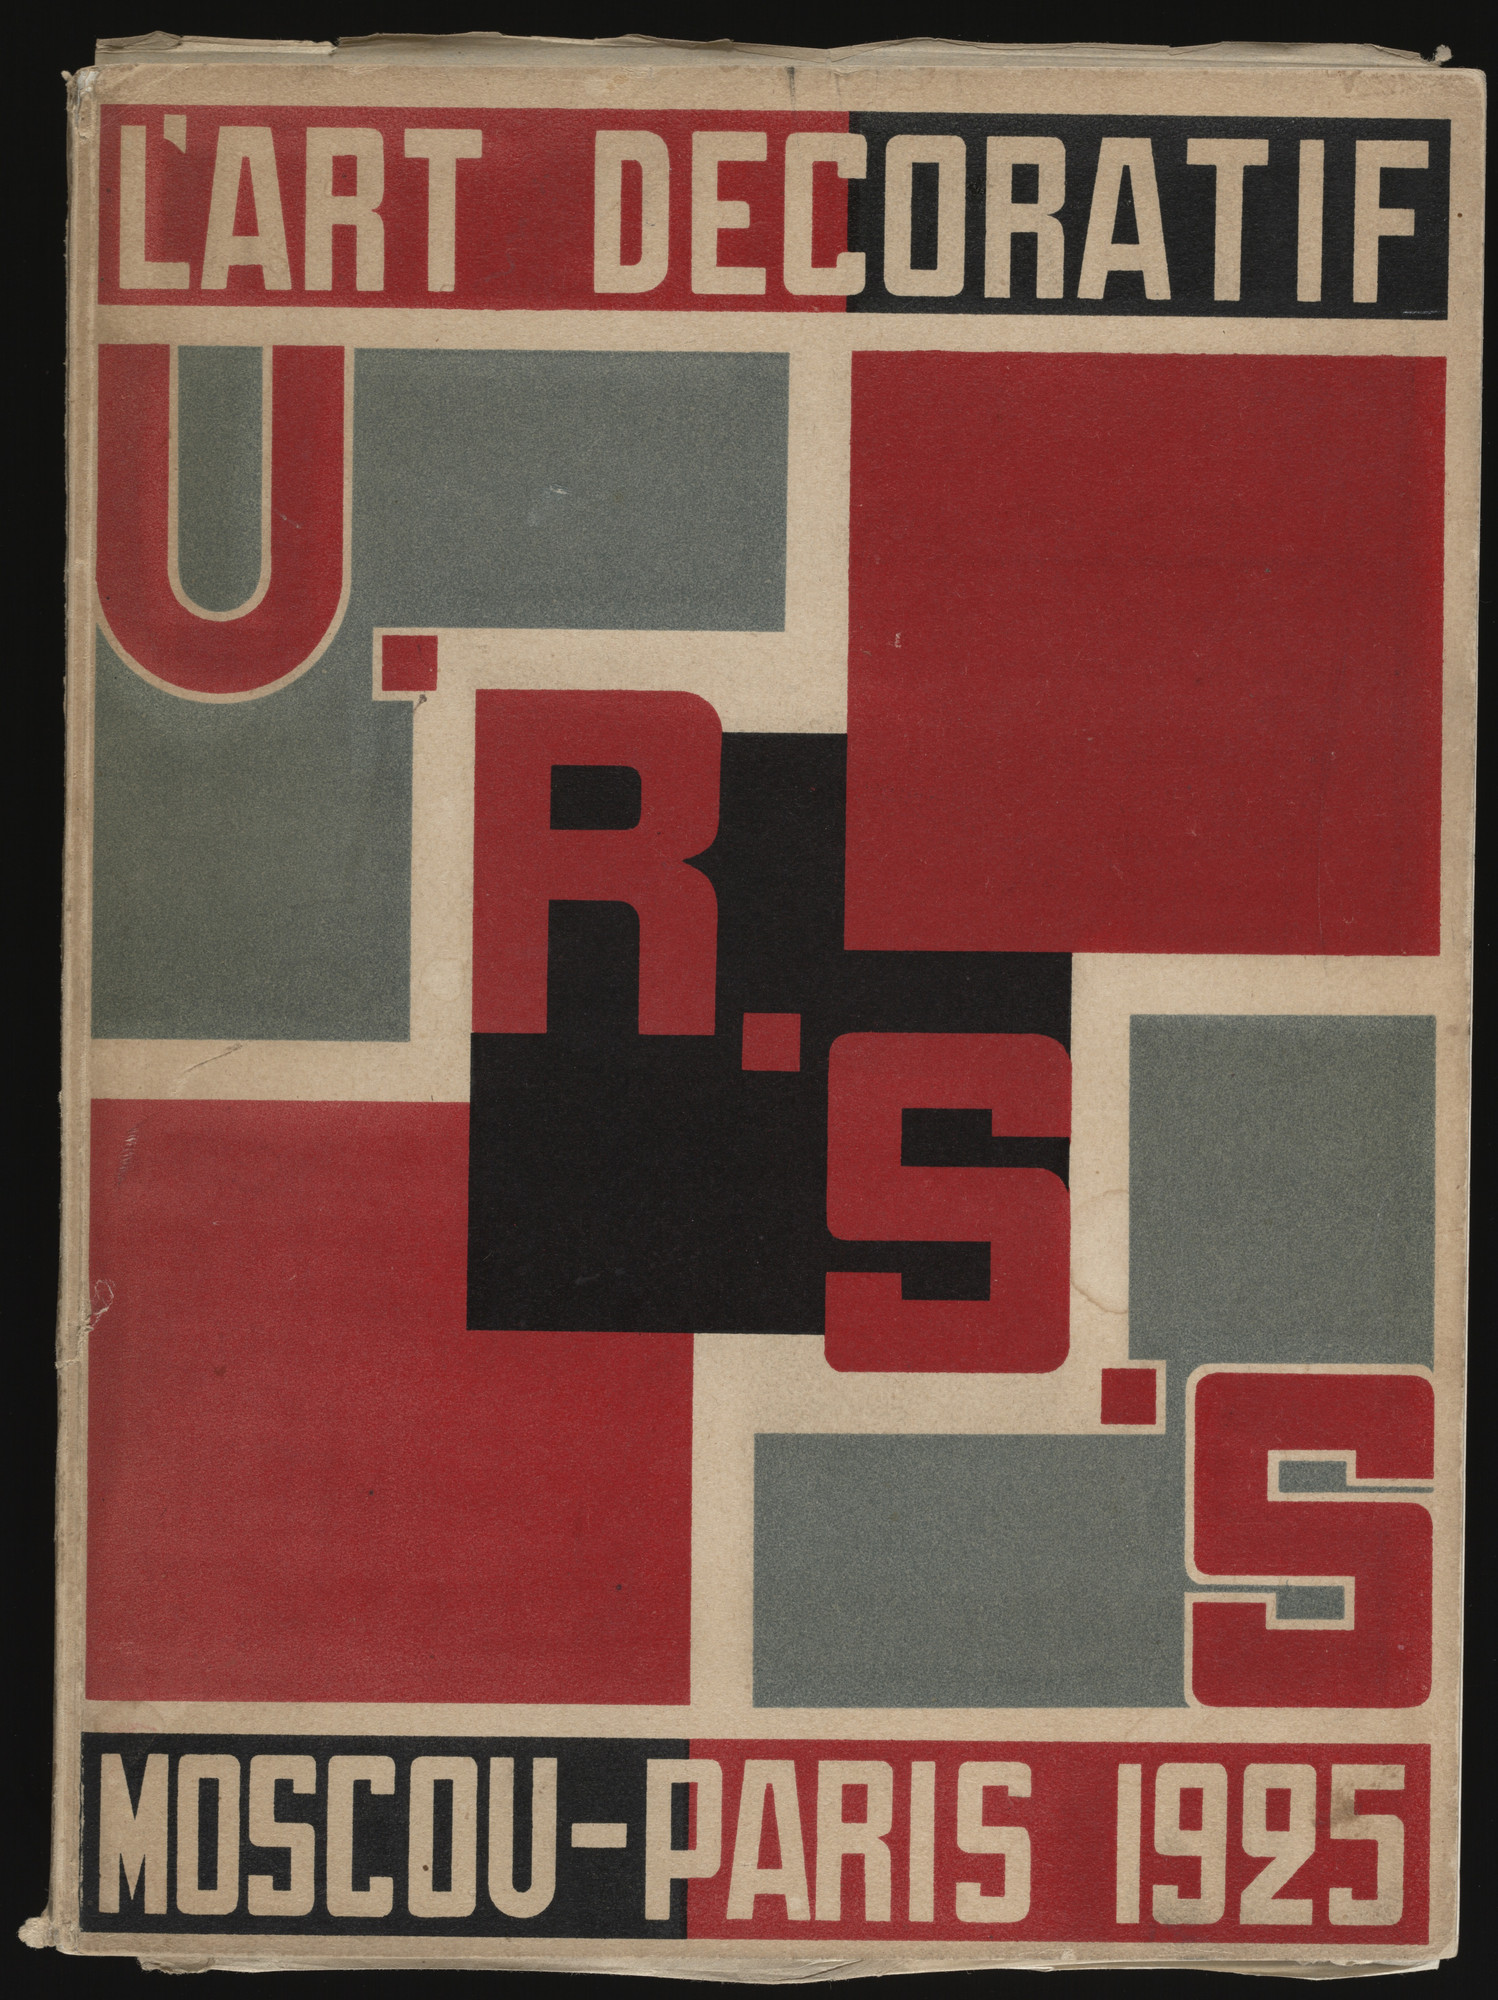 Aleksandr Rodchenko. L'Art décoratif et industriel de l'U.R.S.S. (Decorative and Industrial Art of the U.S.S.R.). 1925